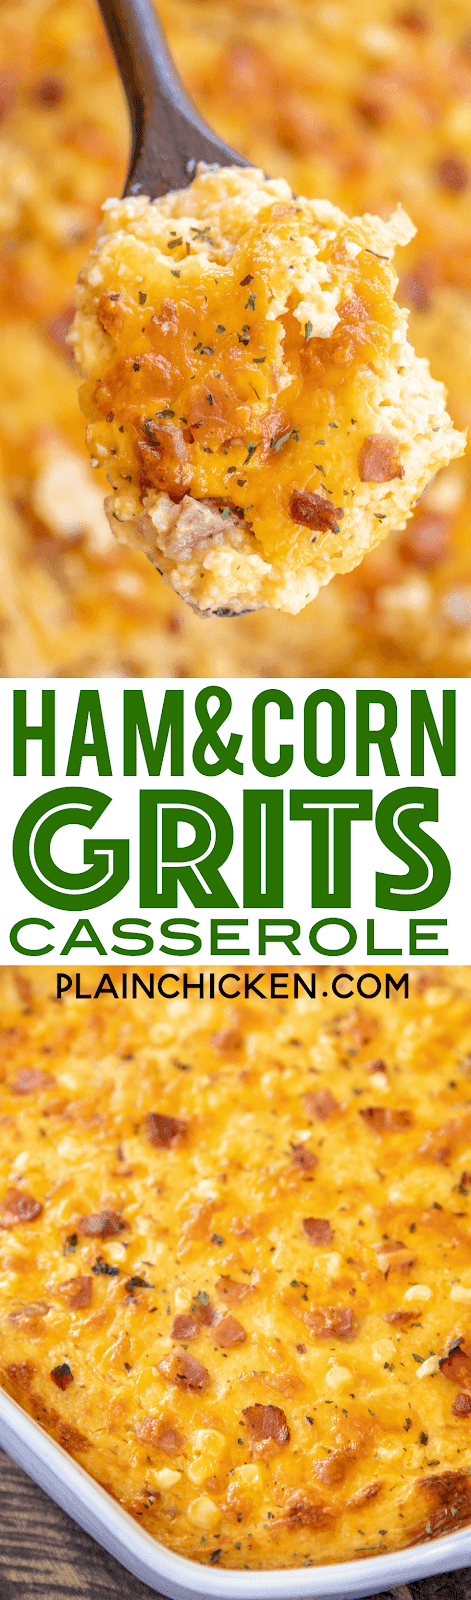 Ham and Corn Grits Casserole - seriously delicious! Great for breakfast, lunch or dinner!! Stone ground grits, chicken broth, ham, corn, cheddar cheese, milk, eggs, pepper and garlic. Can make ahead and refrigerate or freeze for later. Took this to a potluck and everyone asked for the recipe. DELICIOUS!!! #casserole #freezermeal #ham #breakfast #grits